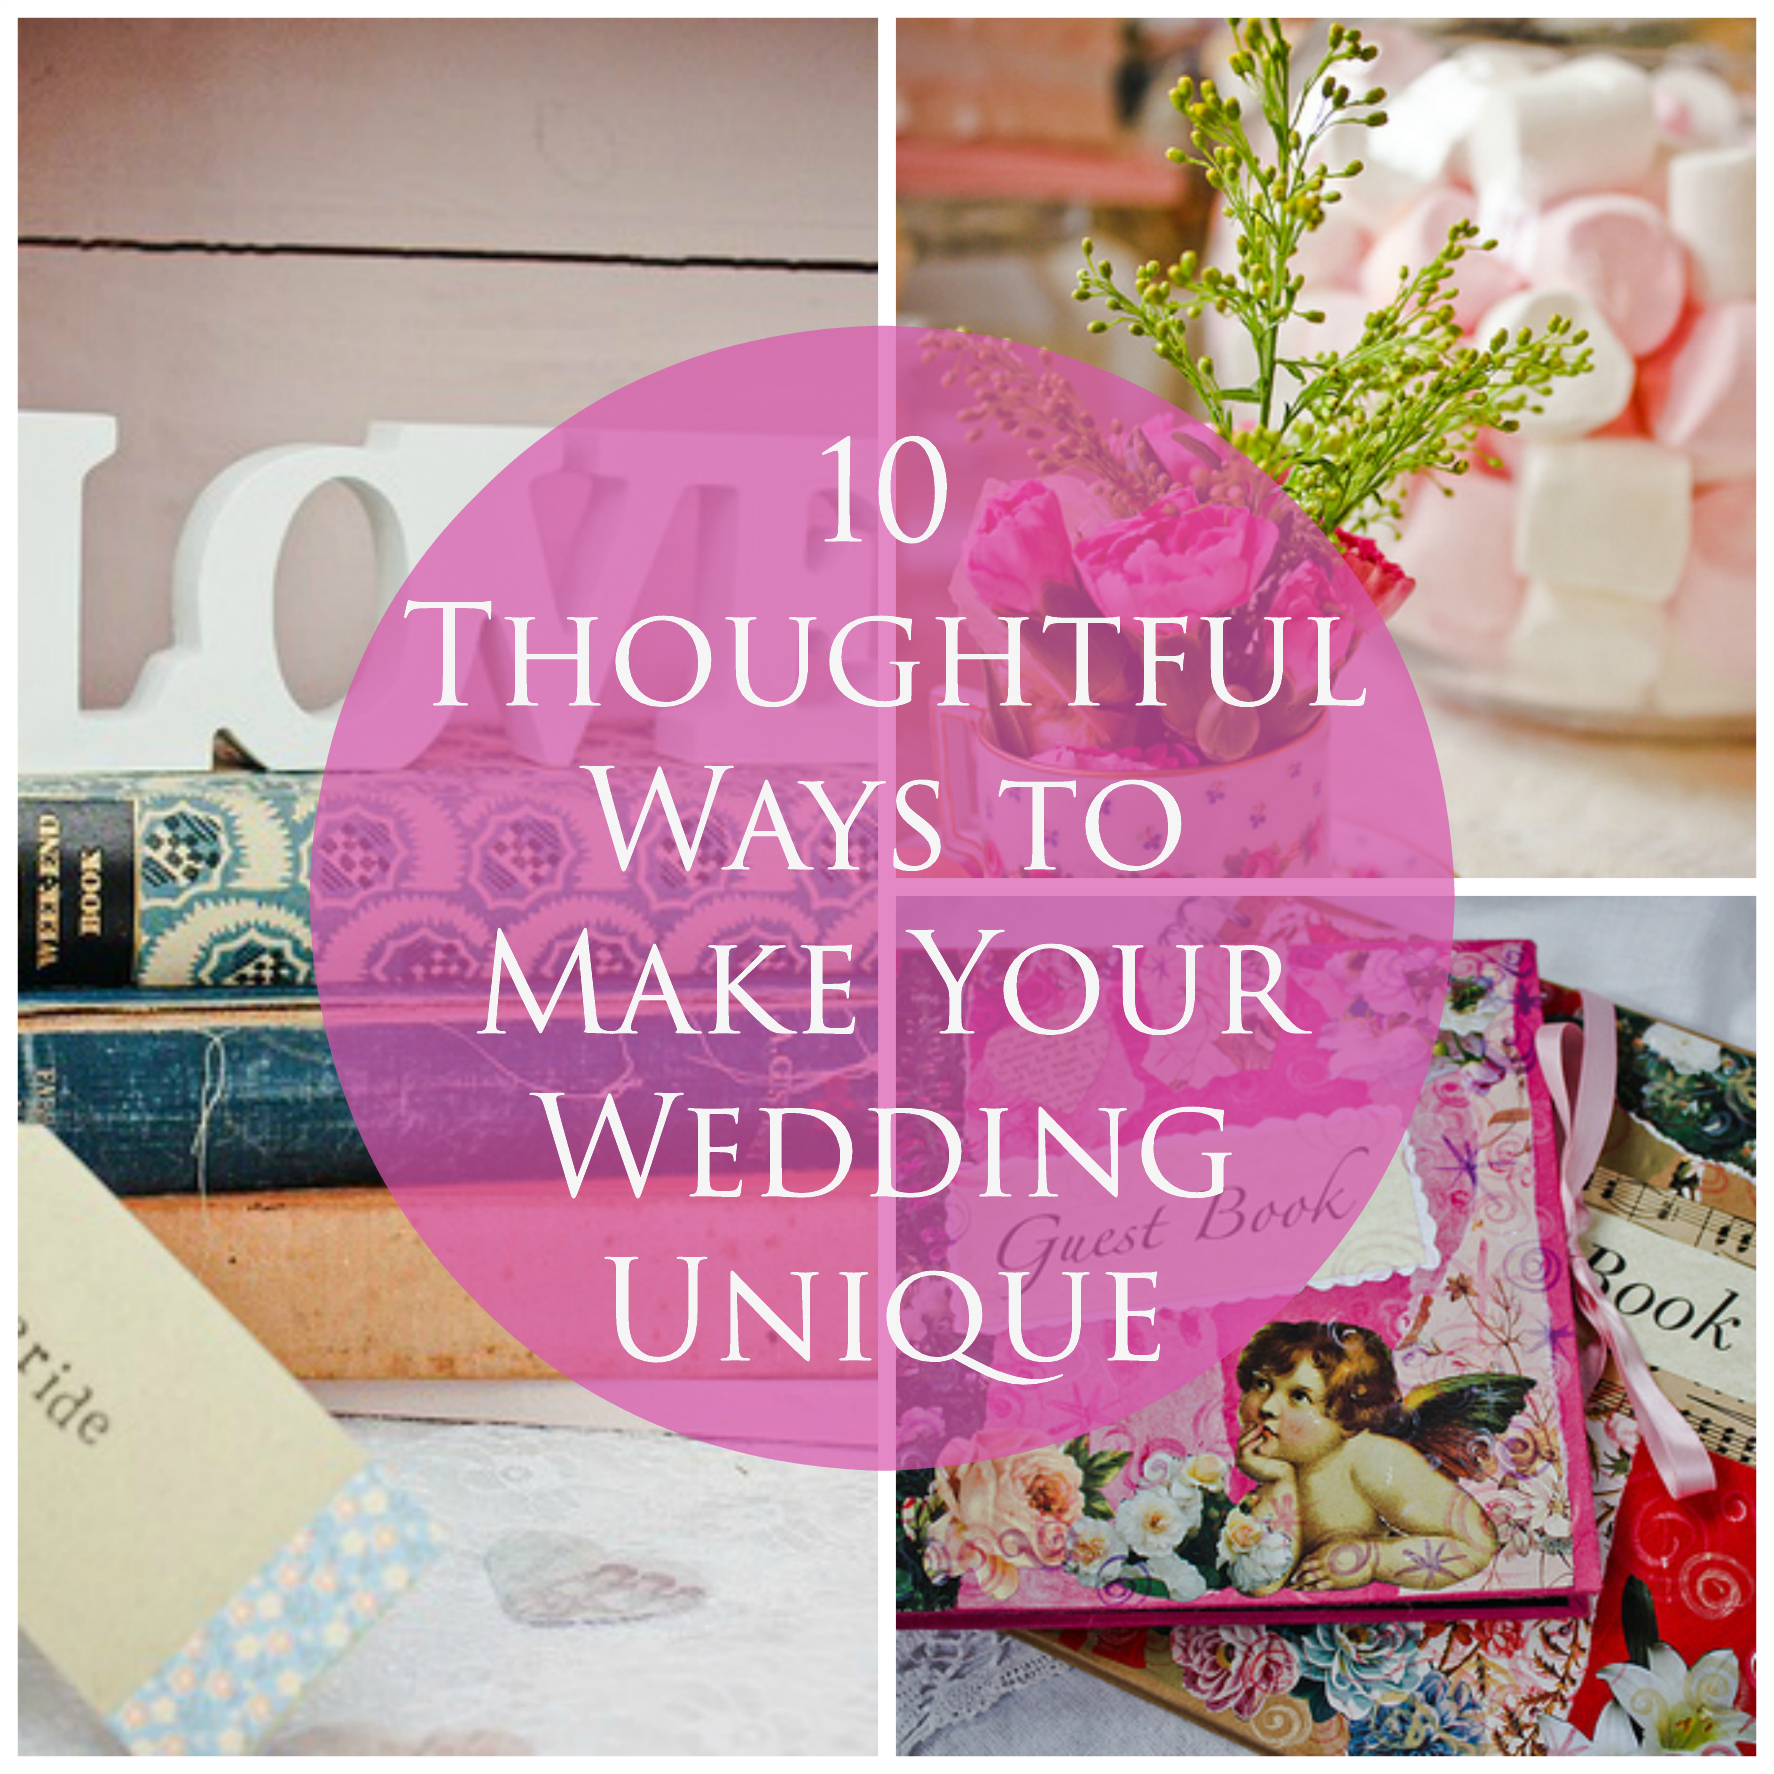 Ten thoughtful ways to make your wedding unique